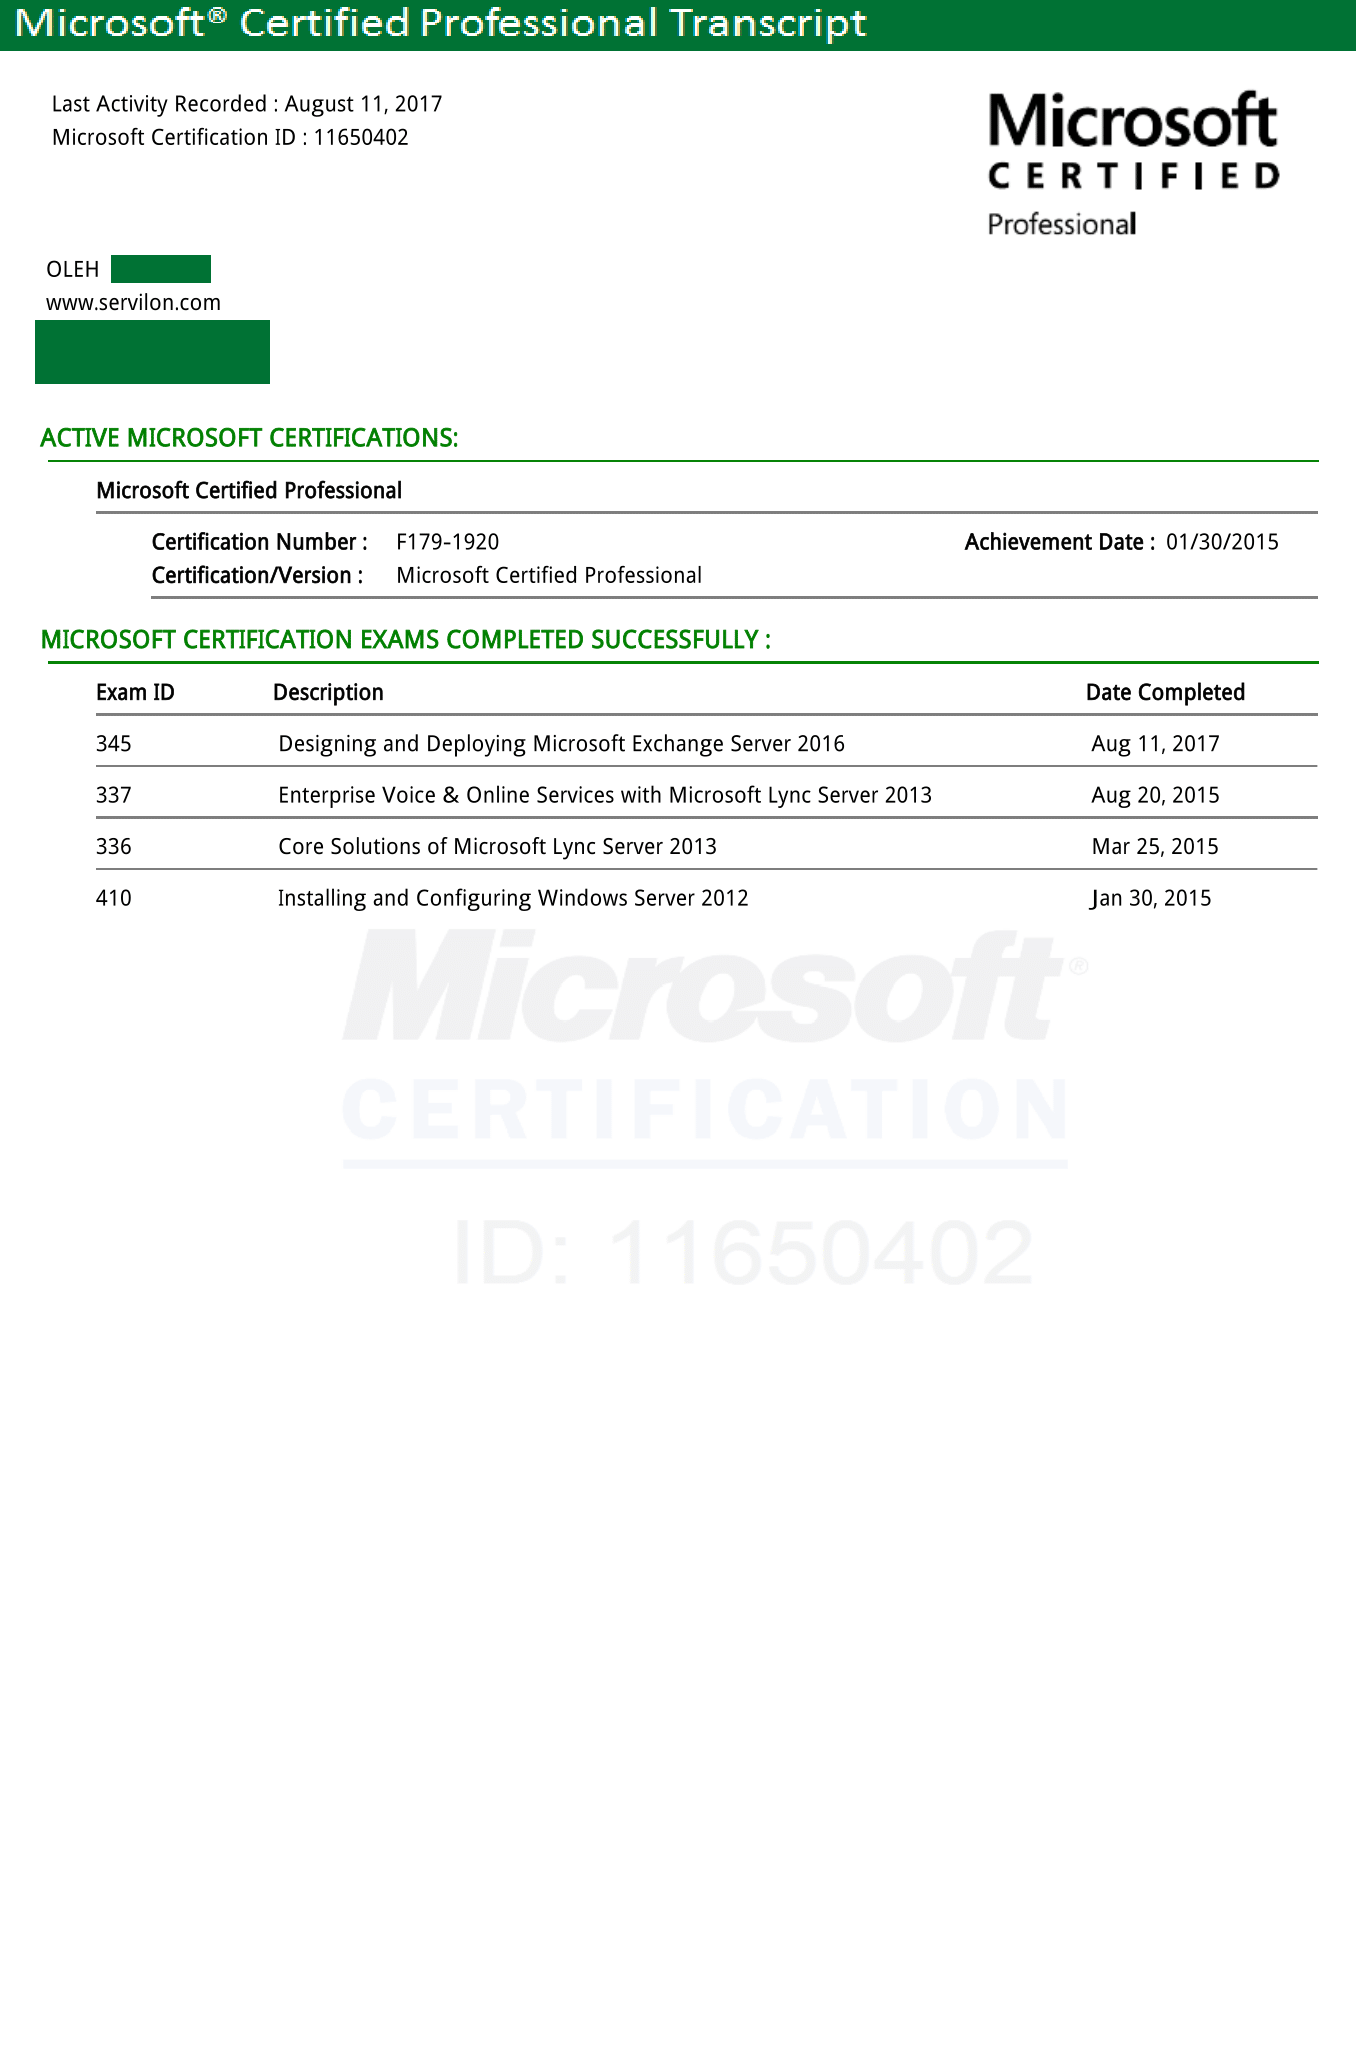 Successful Passing Of The Microsoft Certification Exam Servilon